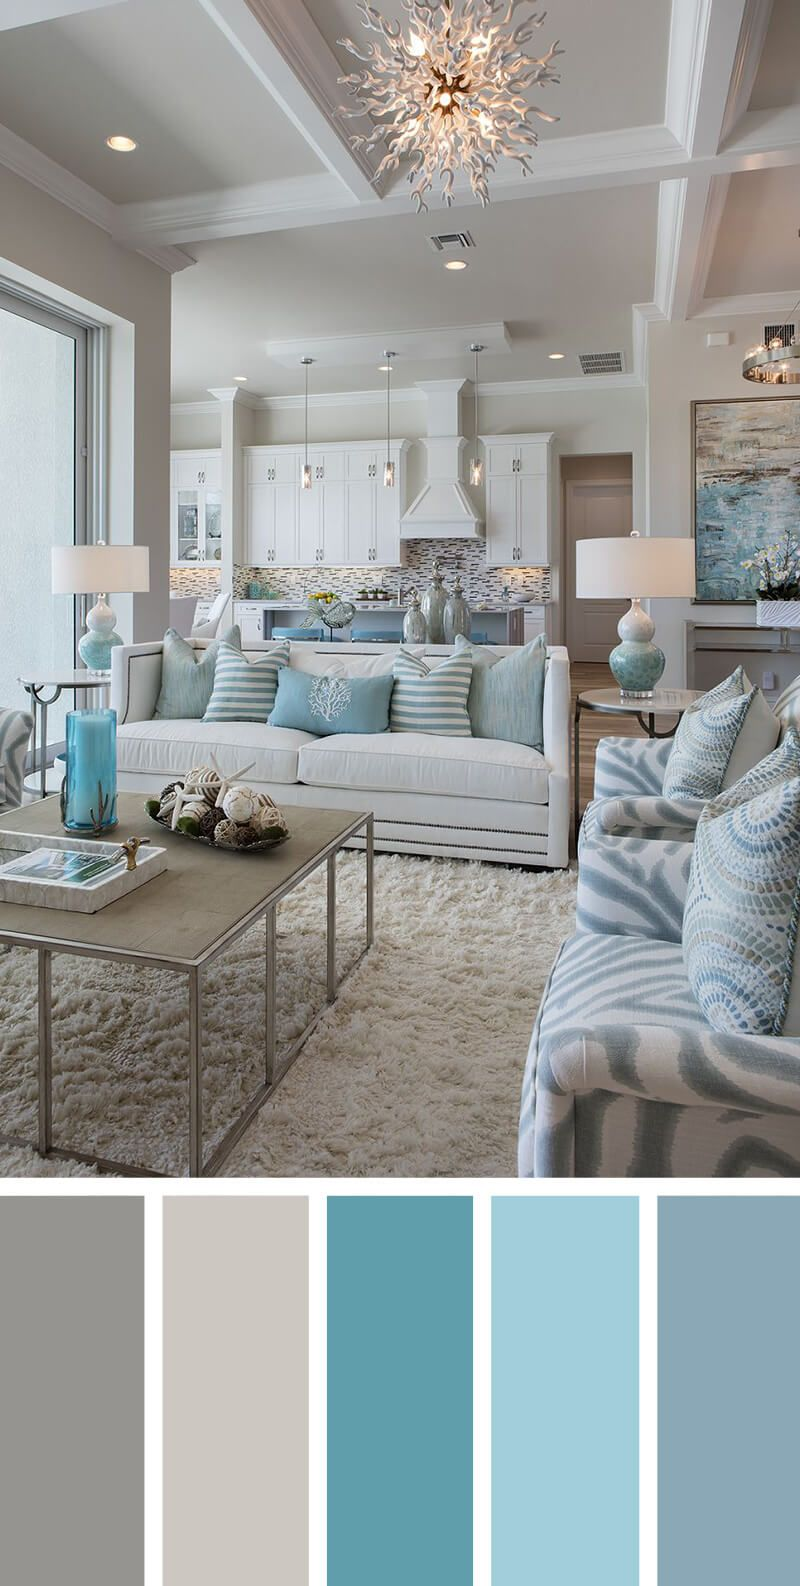 Exceptionnel 7 Living Room Color Schemes That Will Make Your Space Look Professionally  Designed